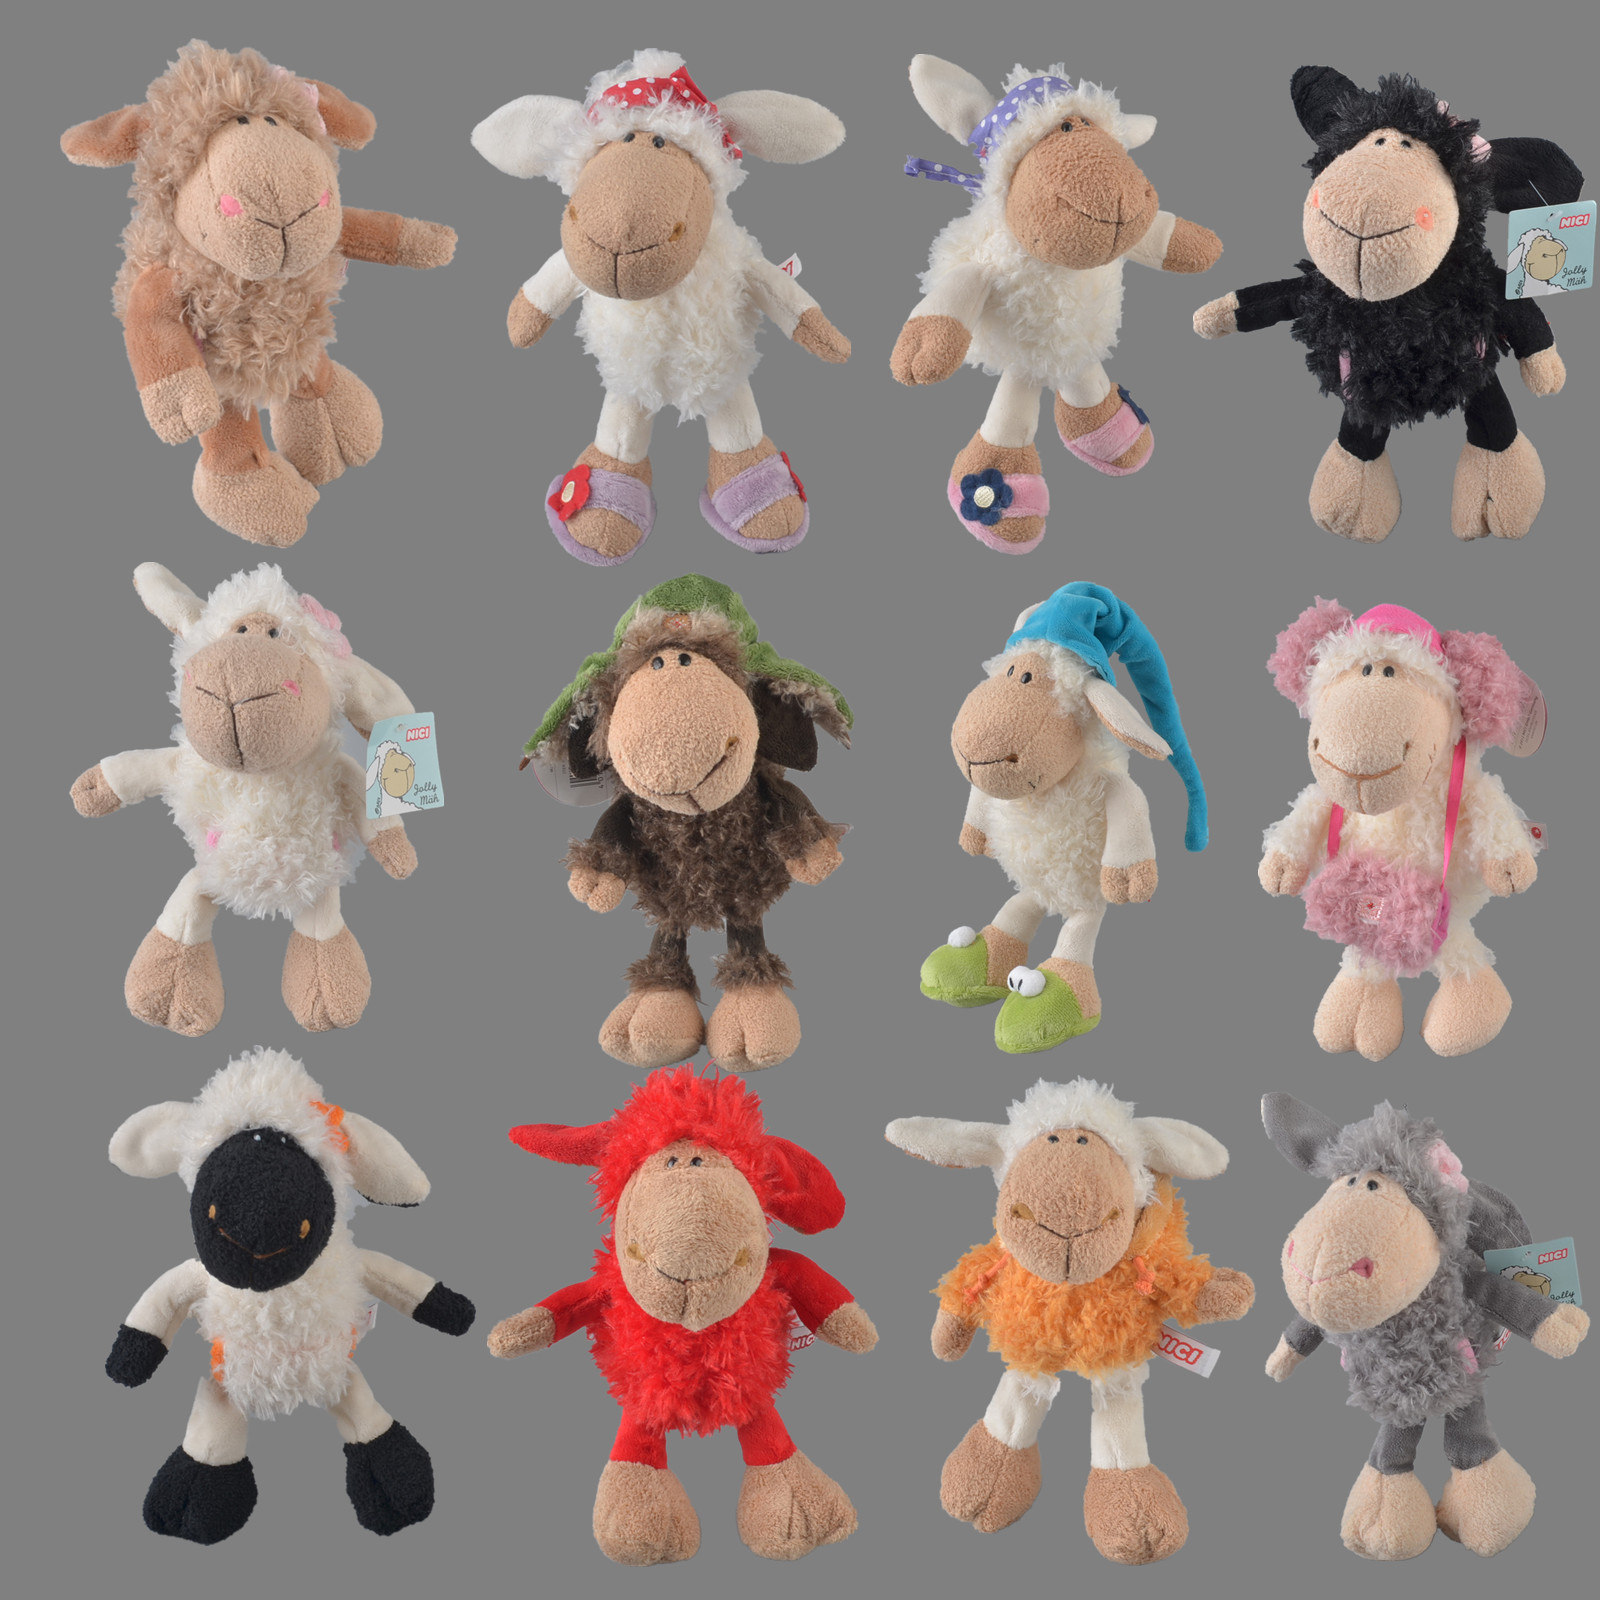 25cm-75cm Pink Lucy Sheep Little Lamb The Aries Headdress  Flower Sheep Stuffed Plush Toy, Baby Kids Doll Gift Free Shipping